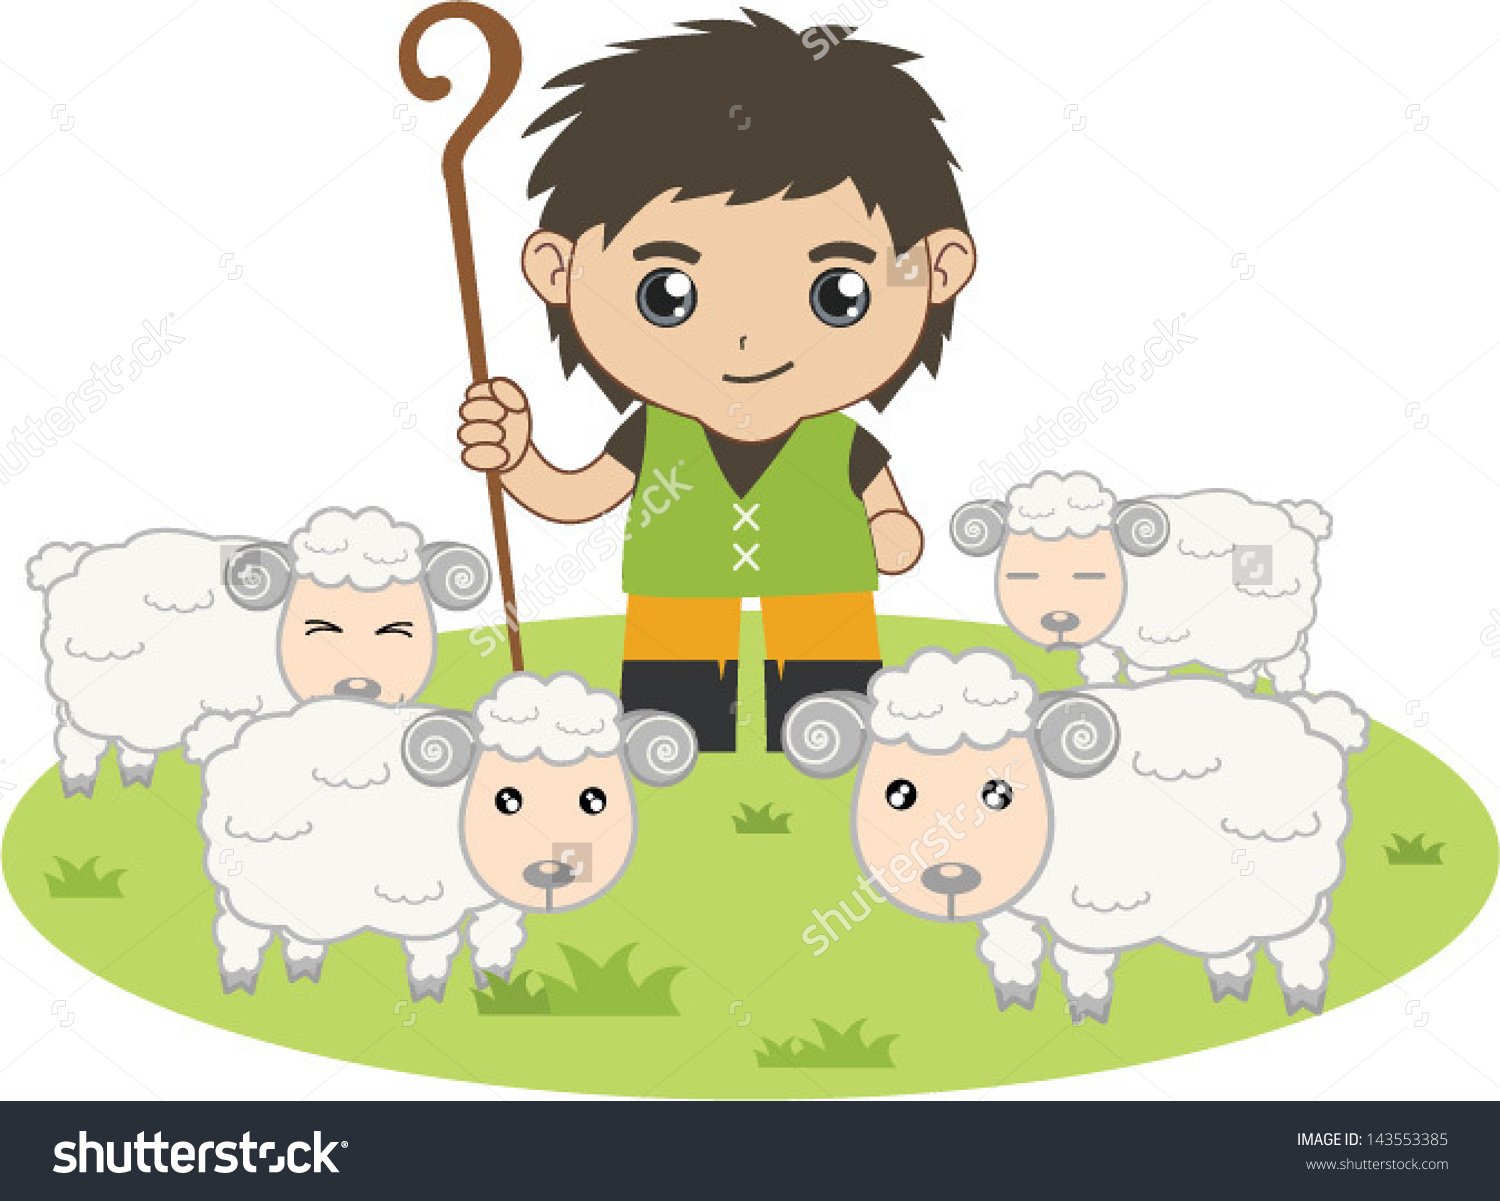 Shepherd Boy clipart #2